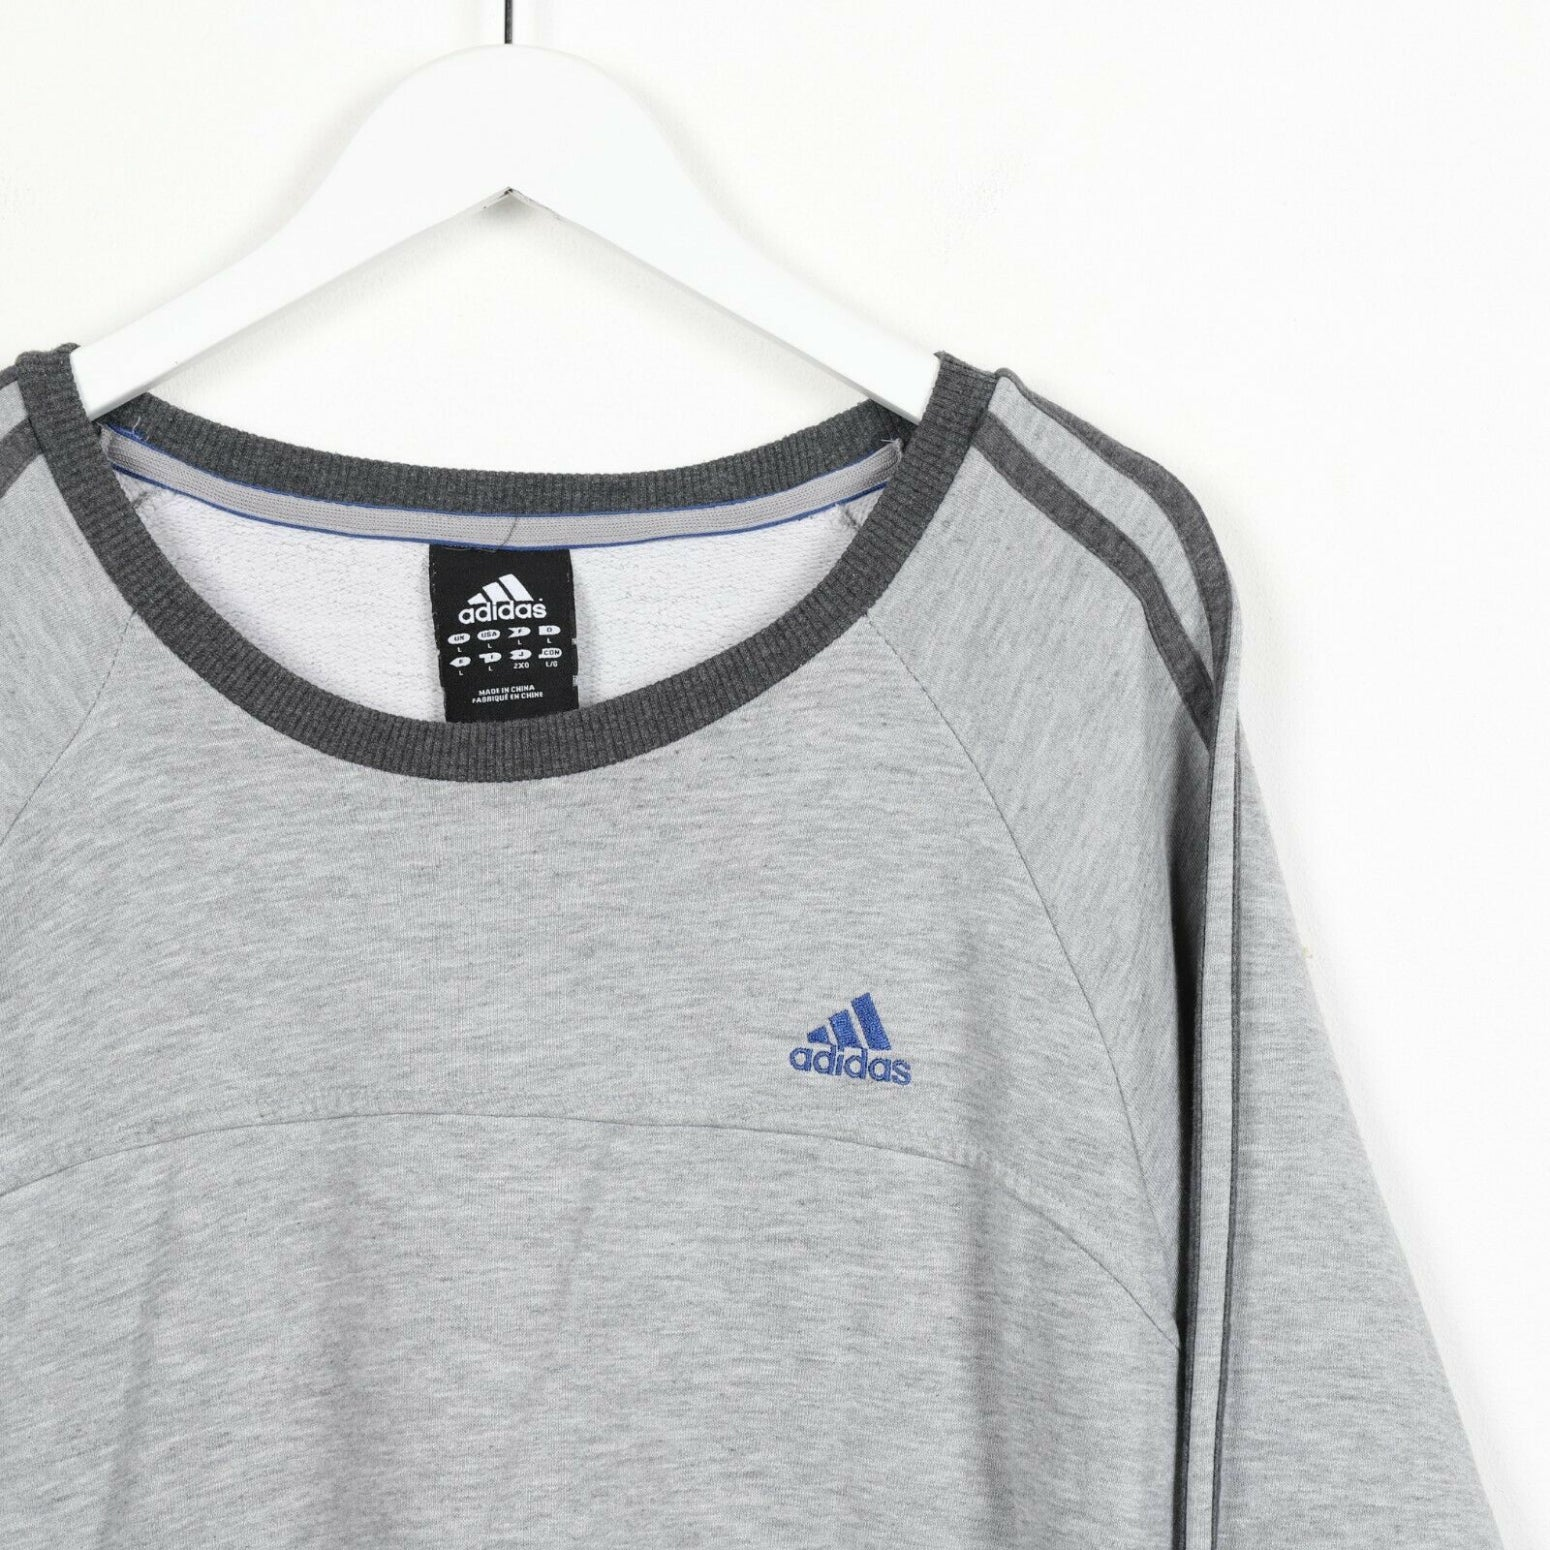 Vintage ADIDAS Small Logo Sweatshirt Jumper Grey | Large L